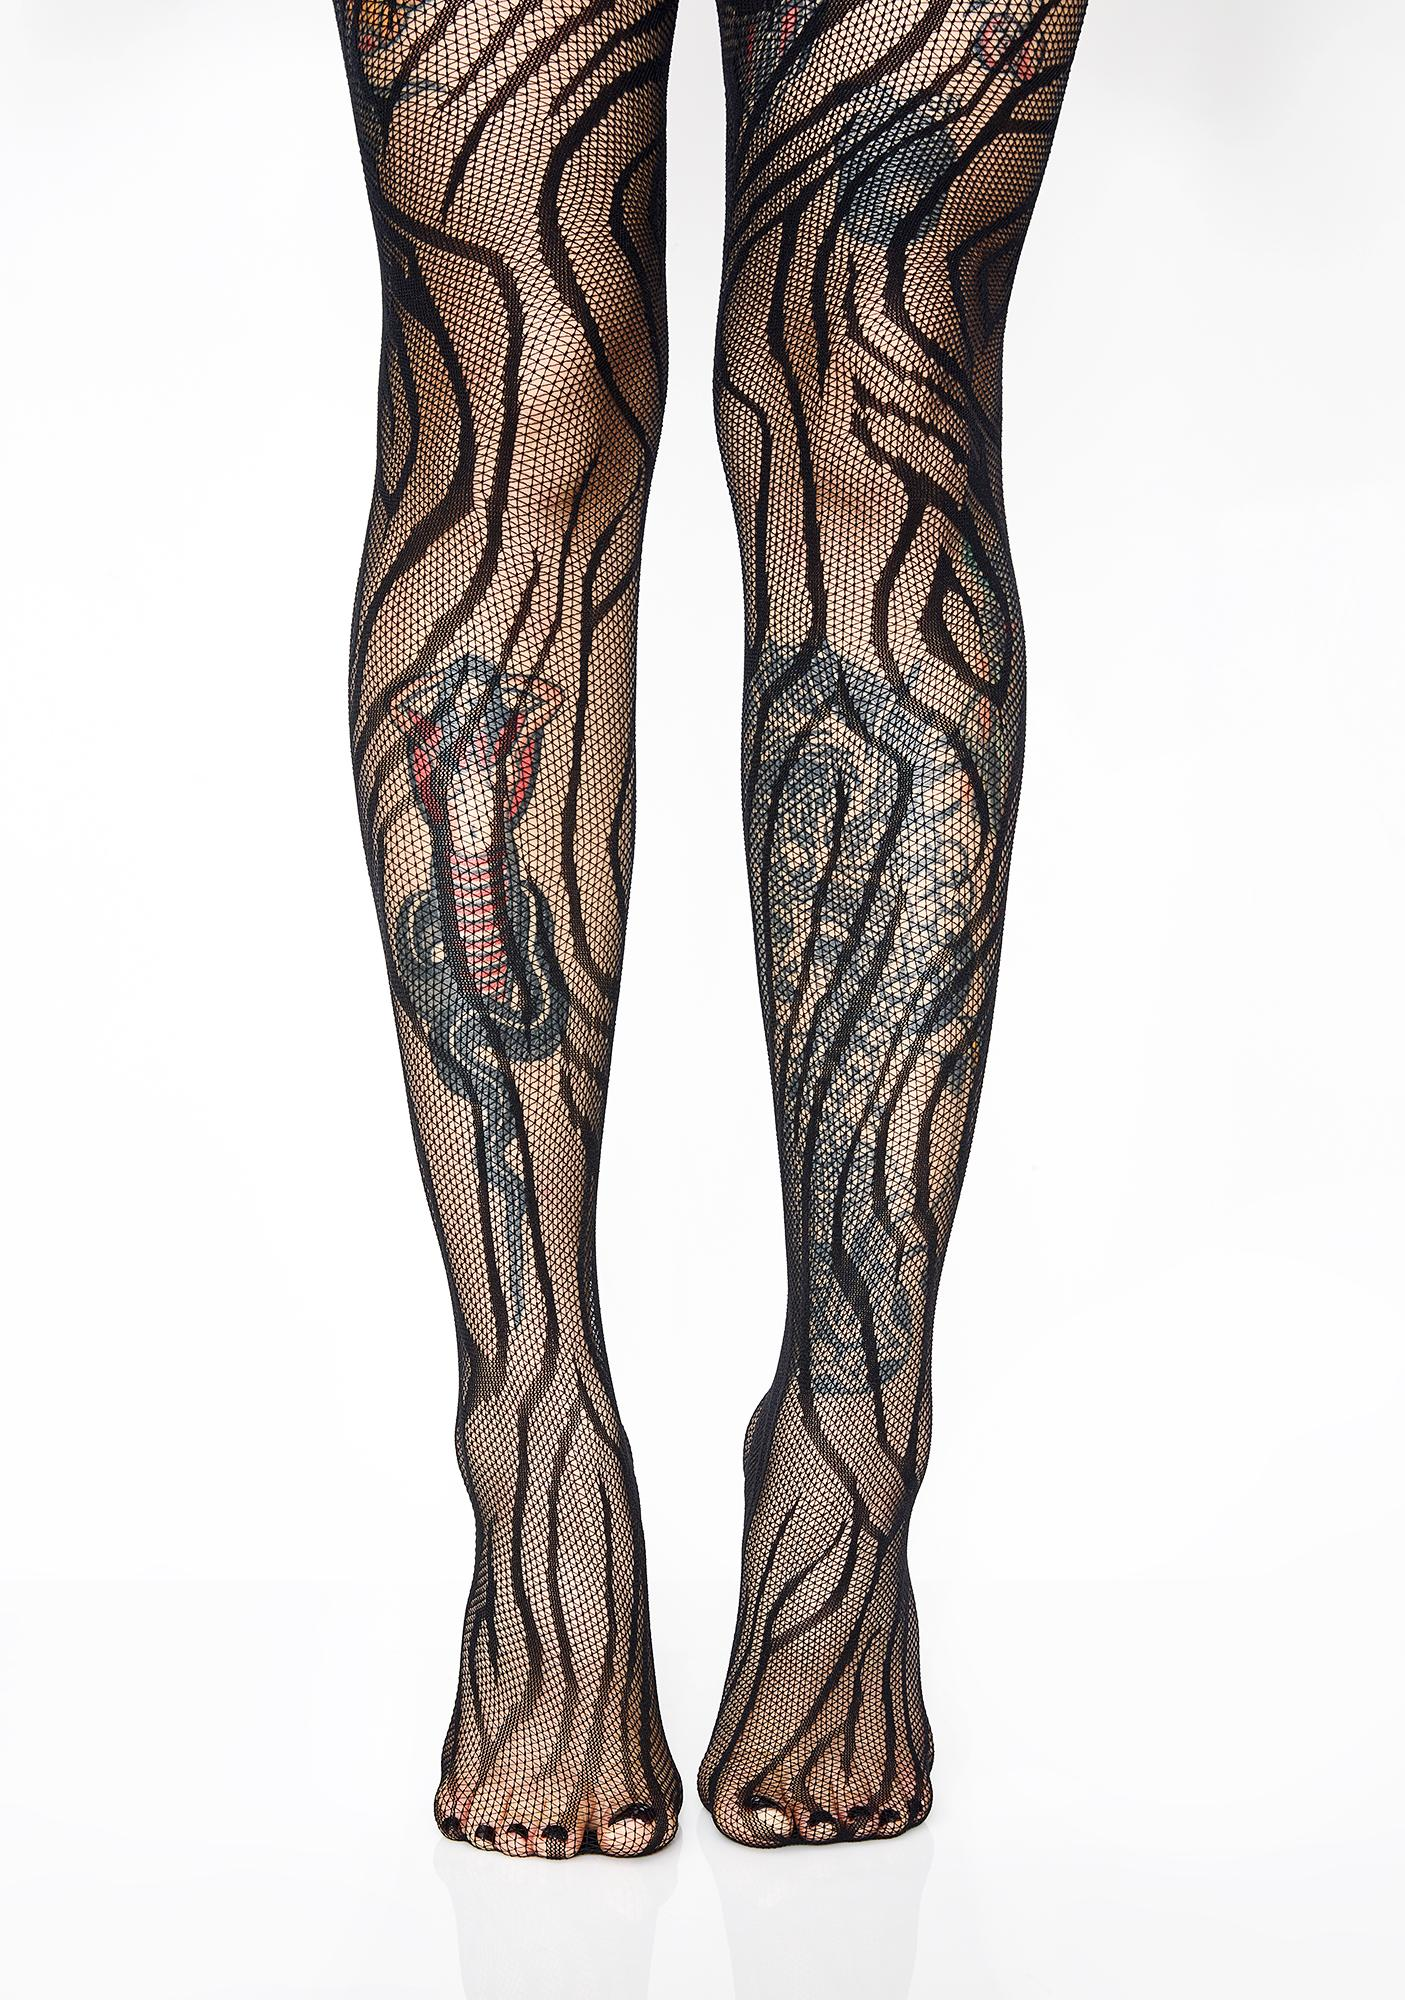 White Tights Pantyhose Spider Web Gem Stone Printed Womens Hosiery NEW Size OS